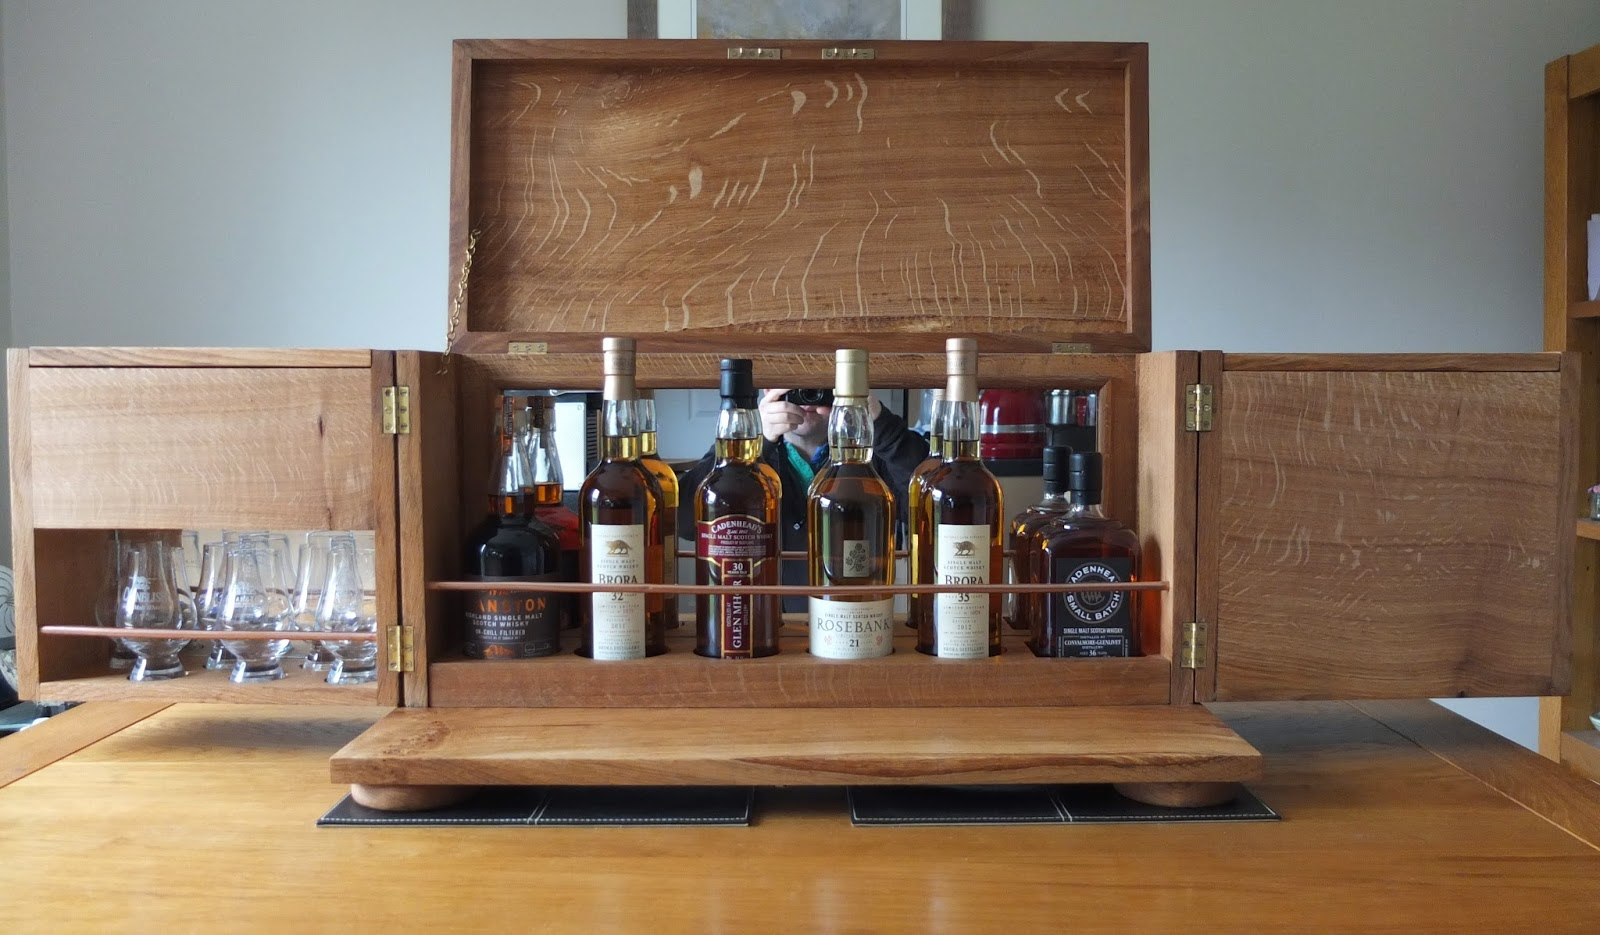 The Whisky Display Cabinet | Malt - Whisky Reviews